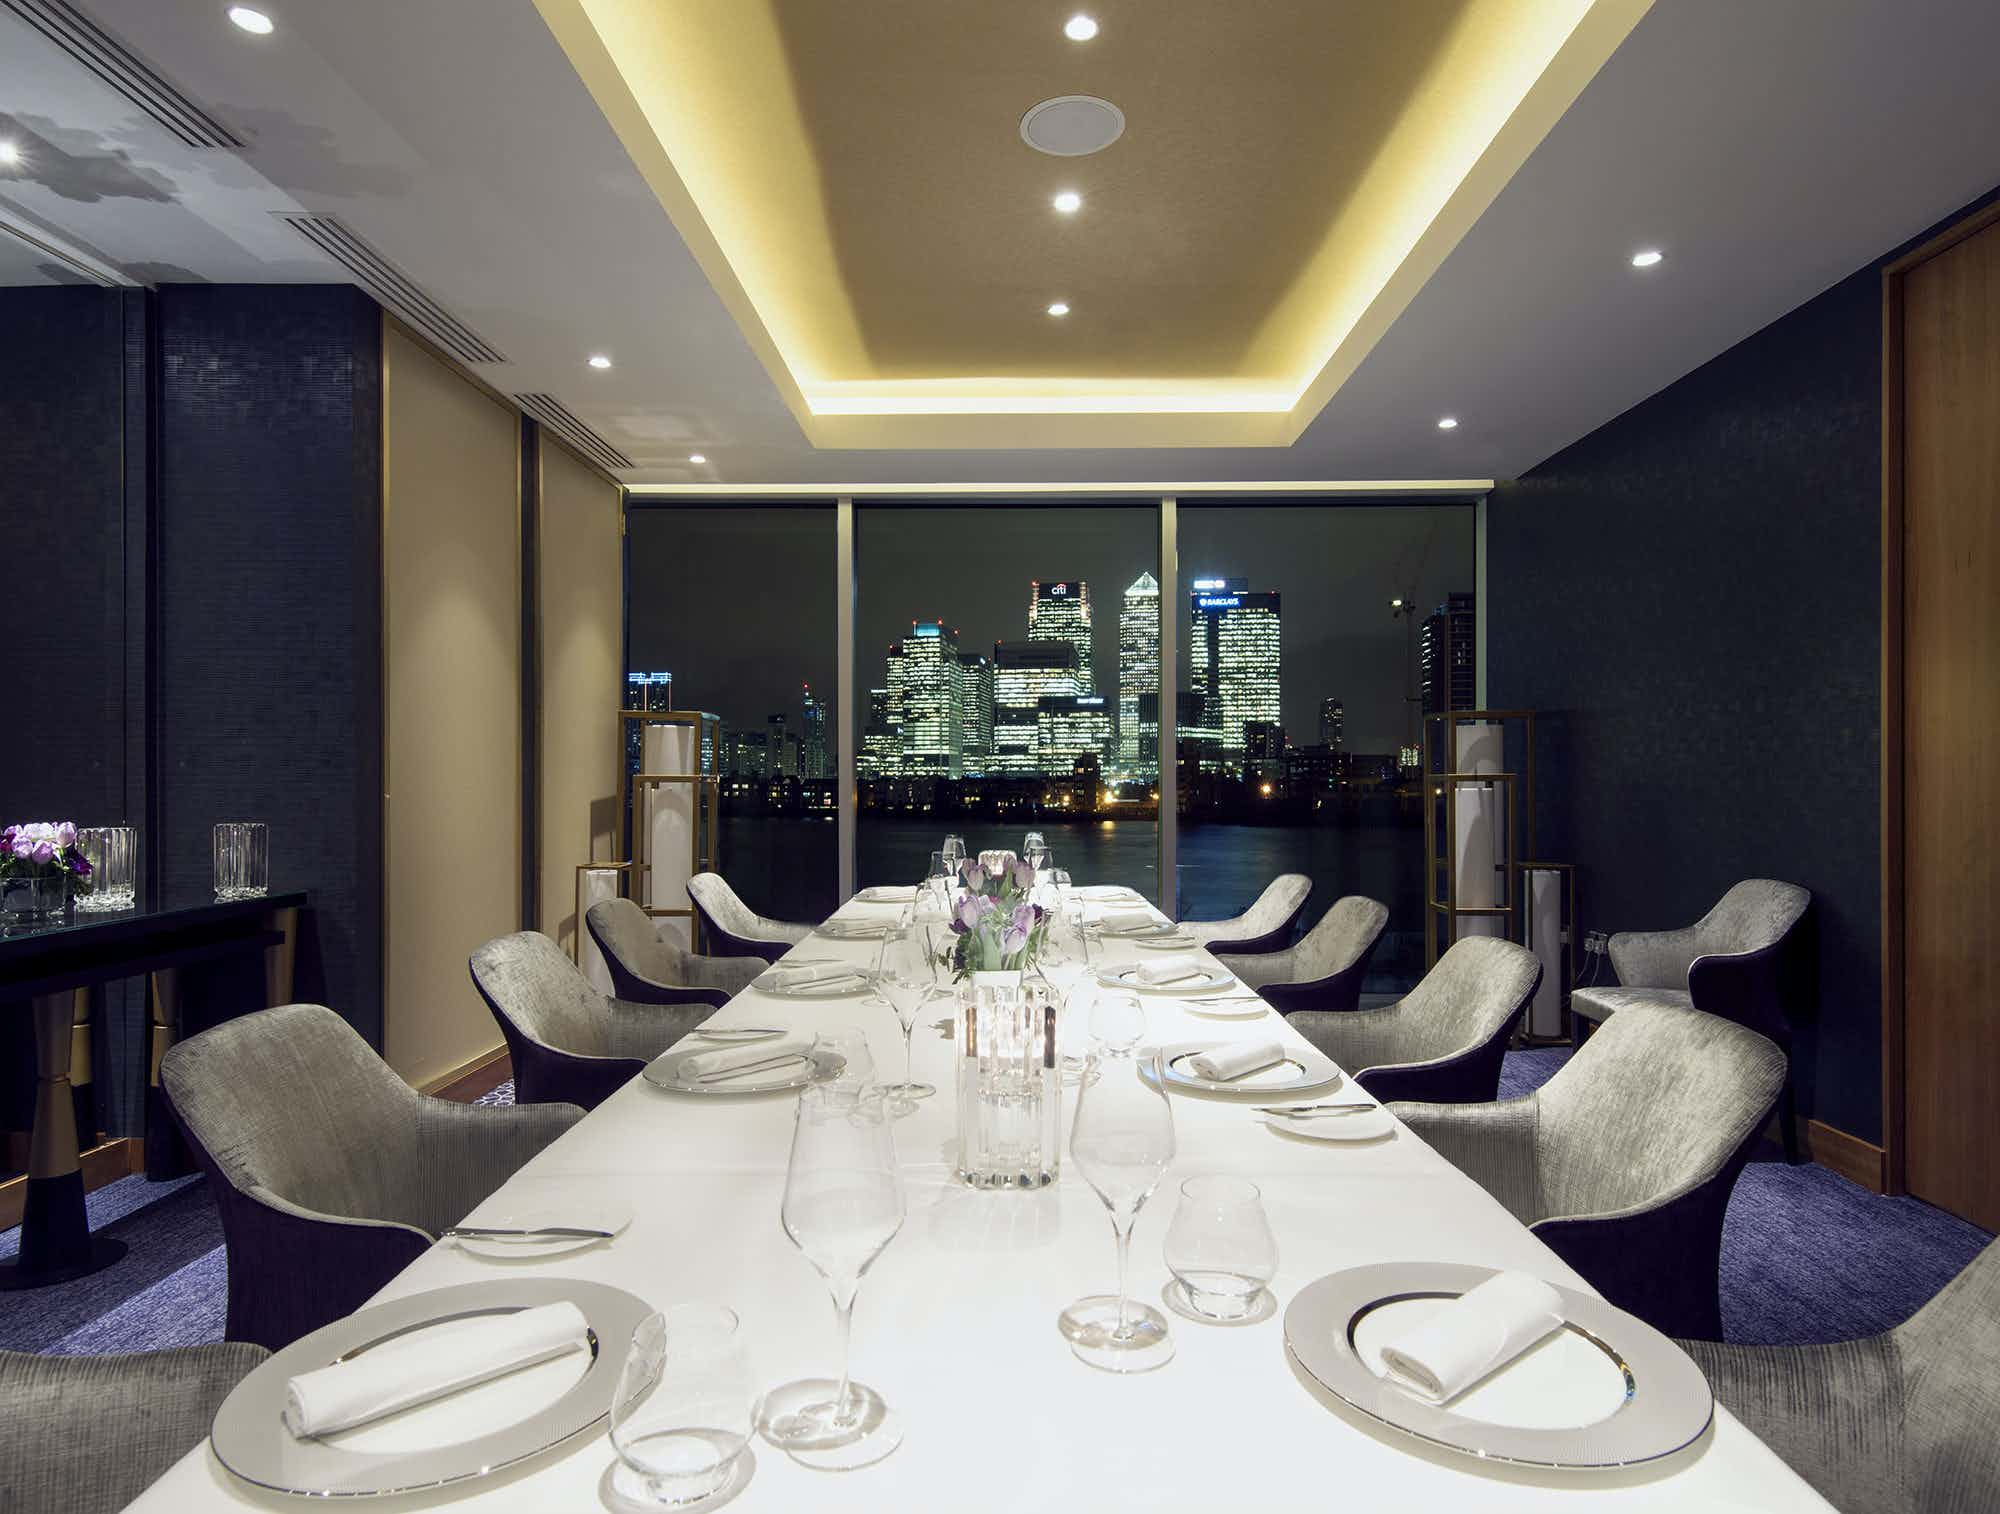 Peninsula Restaurant & Private Dining , InterContinental London - The O2